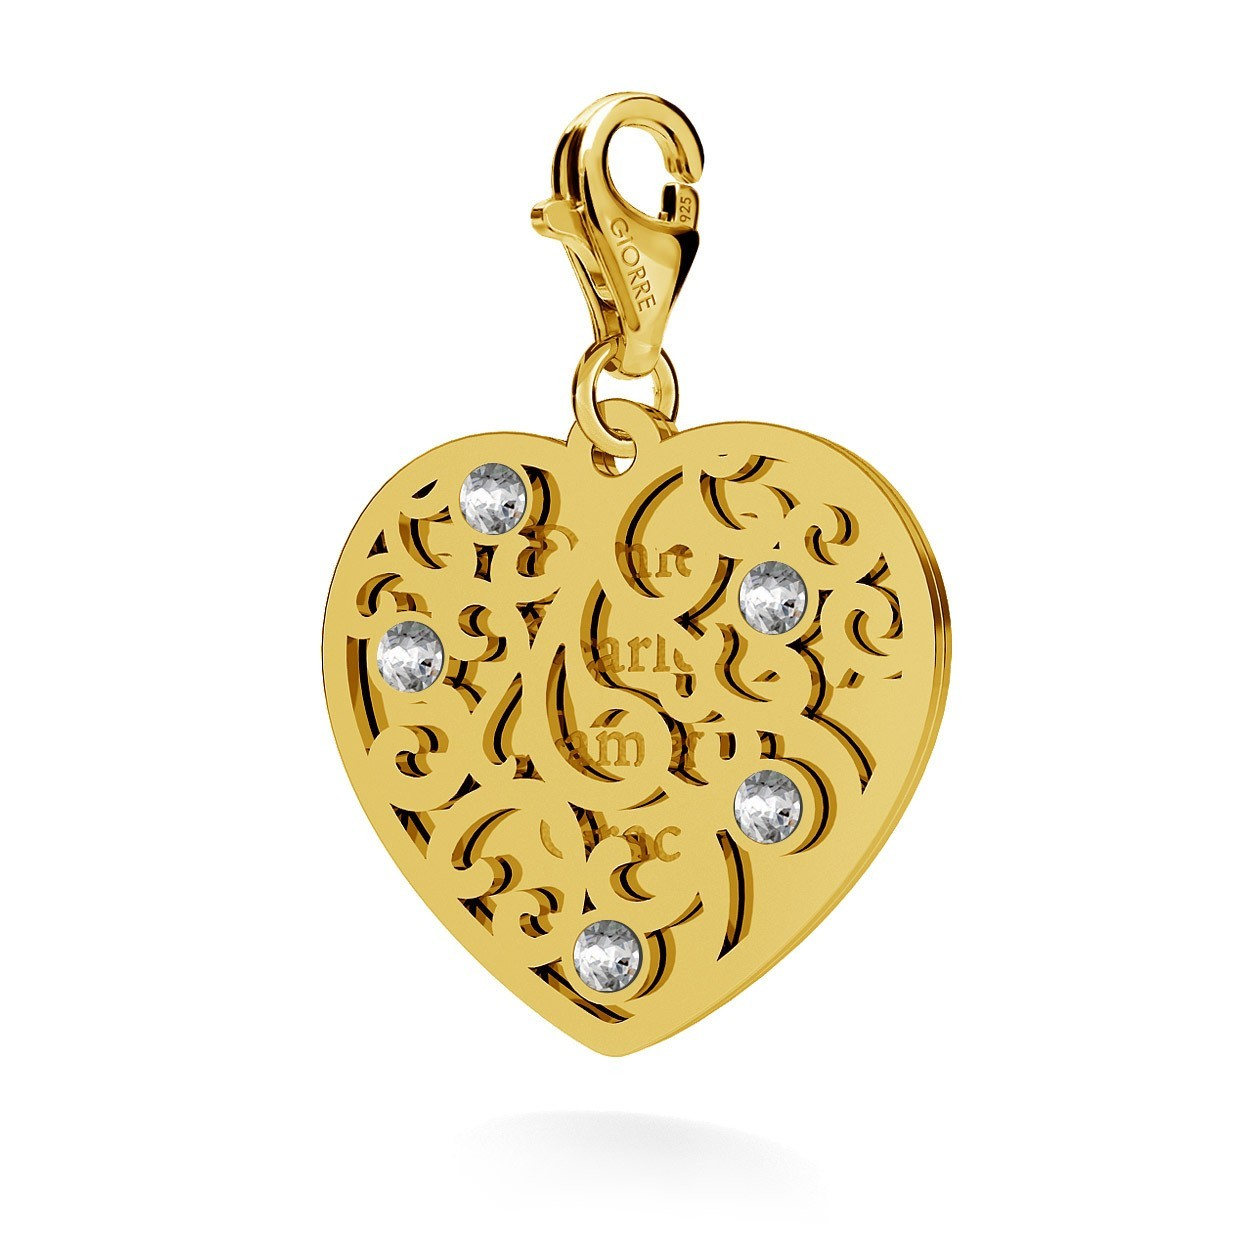 CHARMS 203, TWO HEARTS WITH ENGRAVING, SWAROVSKI